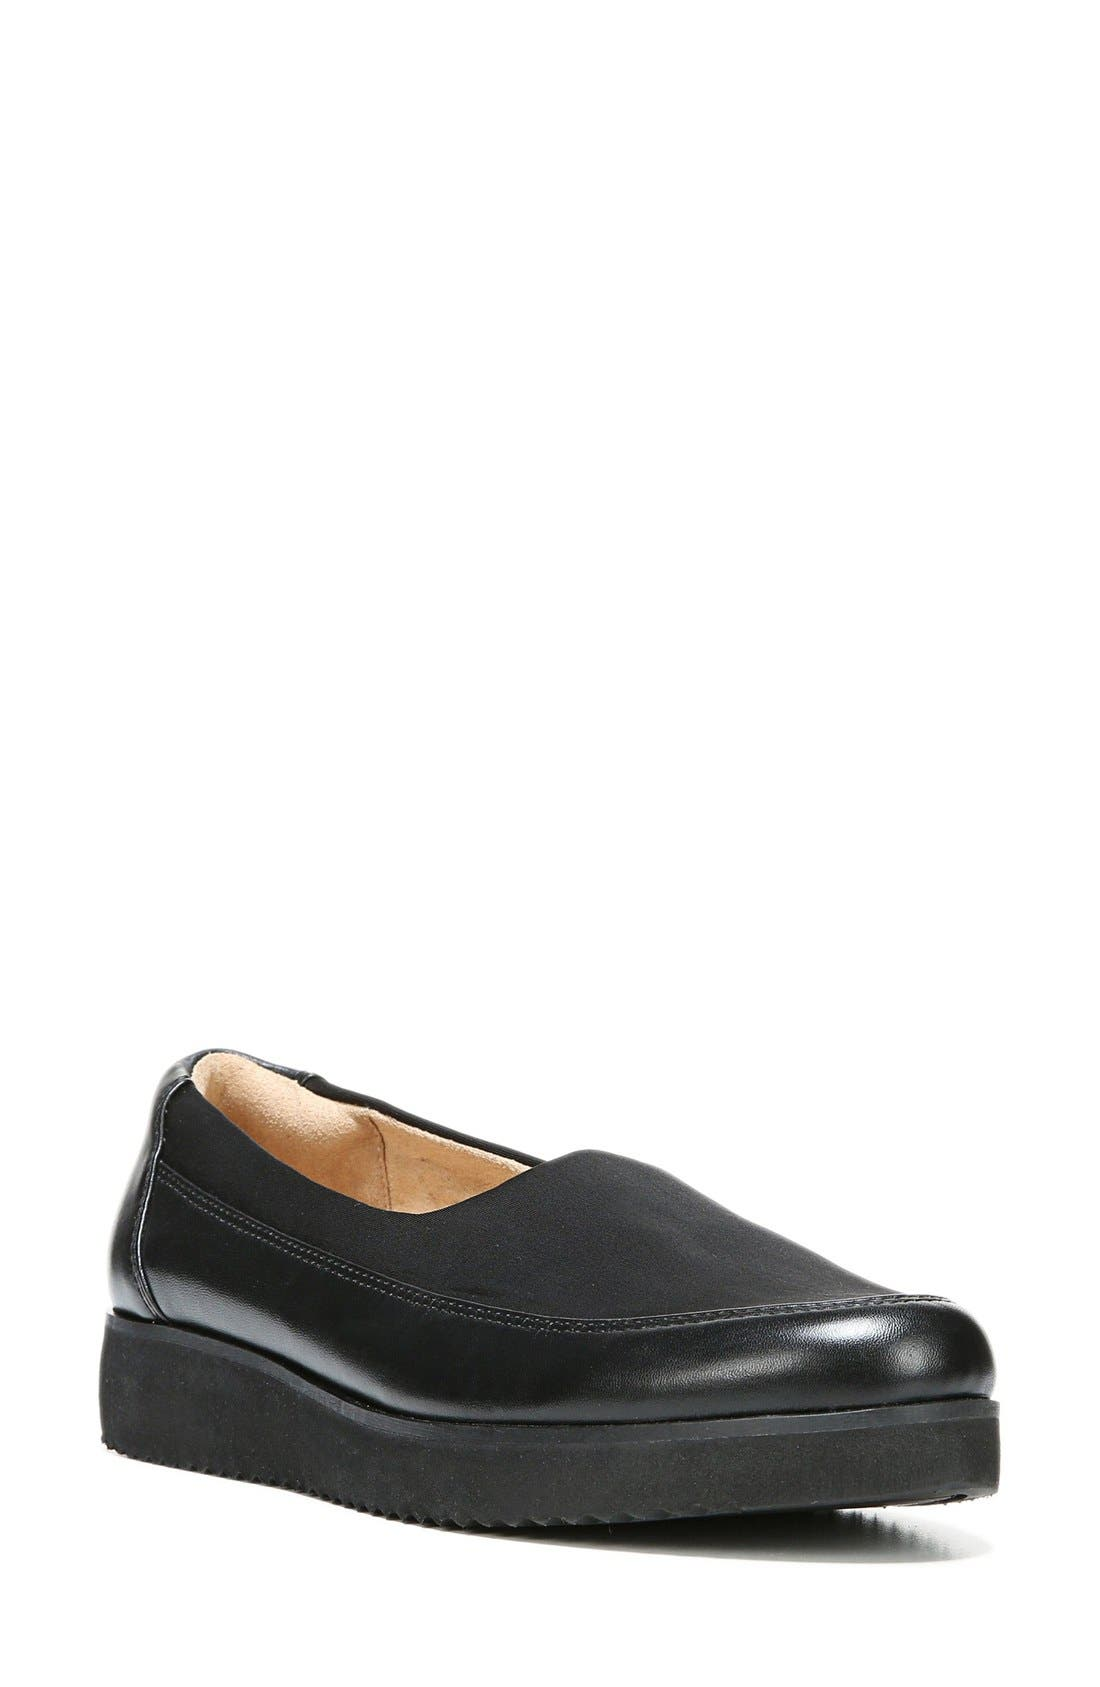 'Neoma' Loafer, Main, color, 001